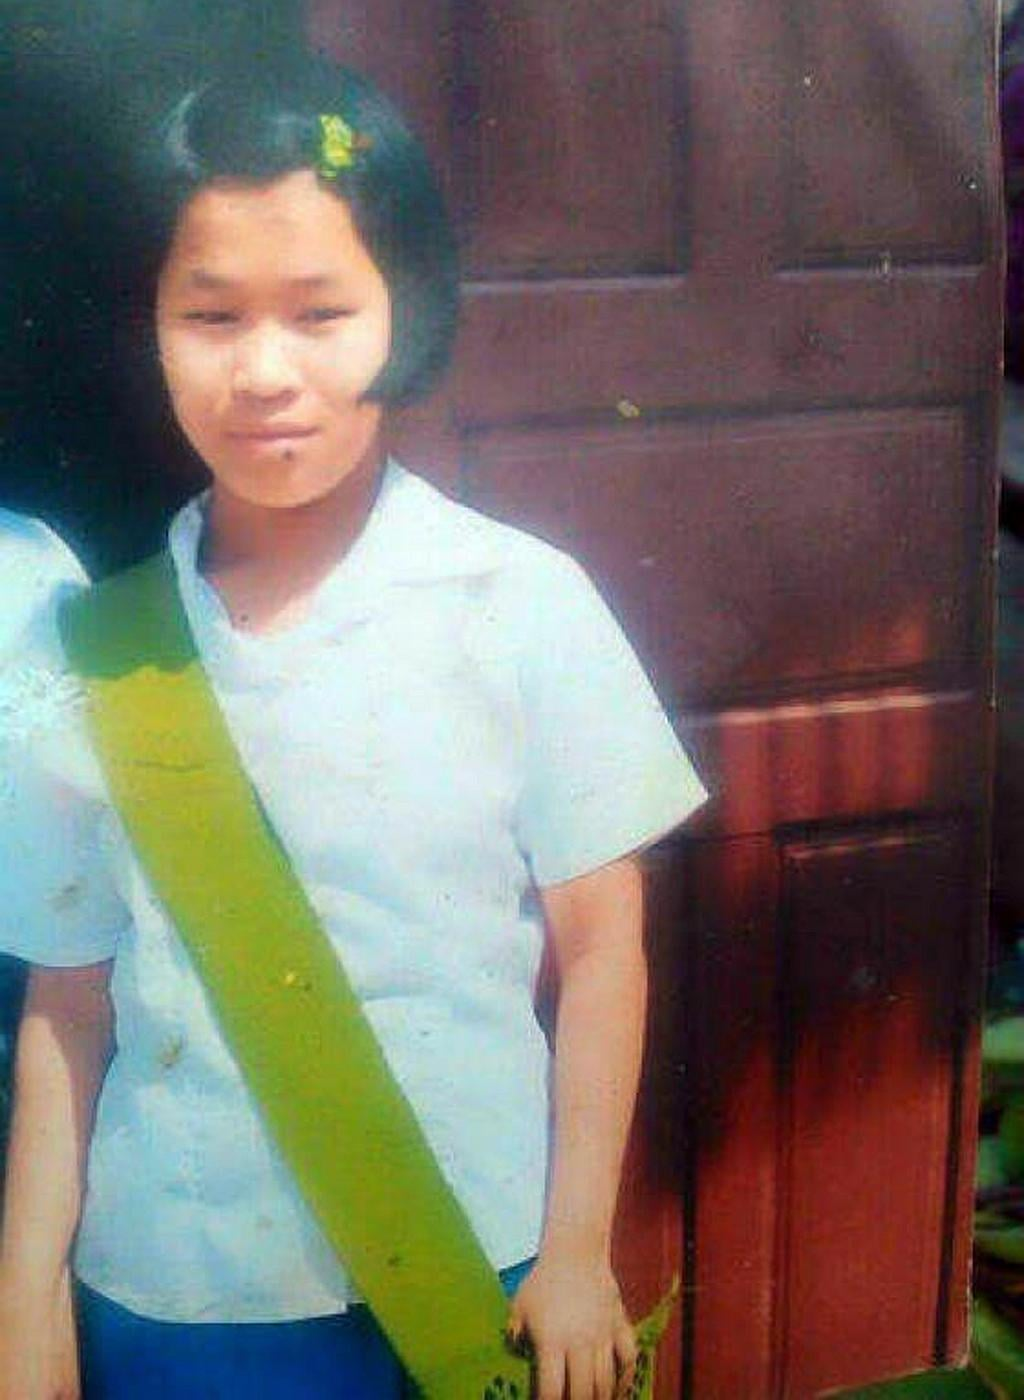 piang_ngaih_don_1.jpg An old photo of the deceased, foreign domestic worker Piang Ngaih Don. -- Picture via Facebook/Helping Hands for Migrant Workers, Singapore